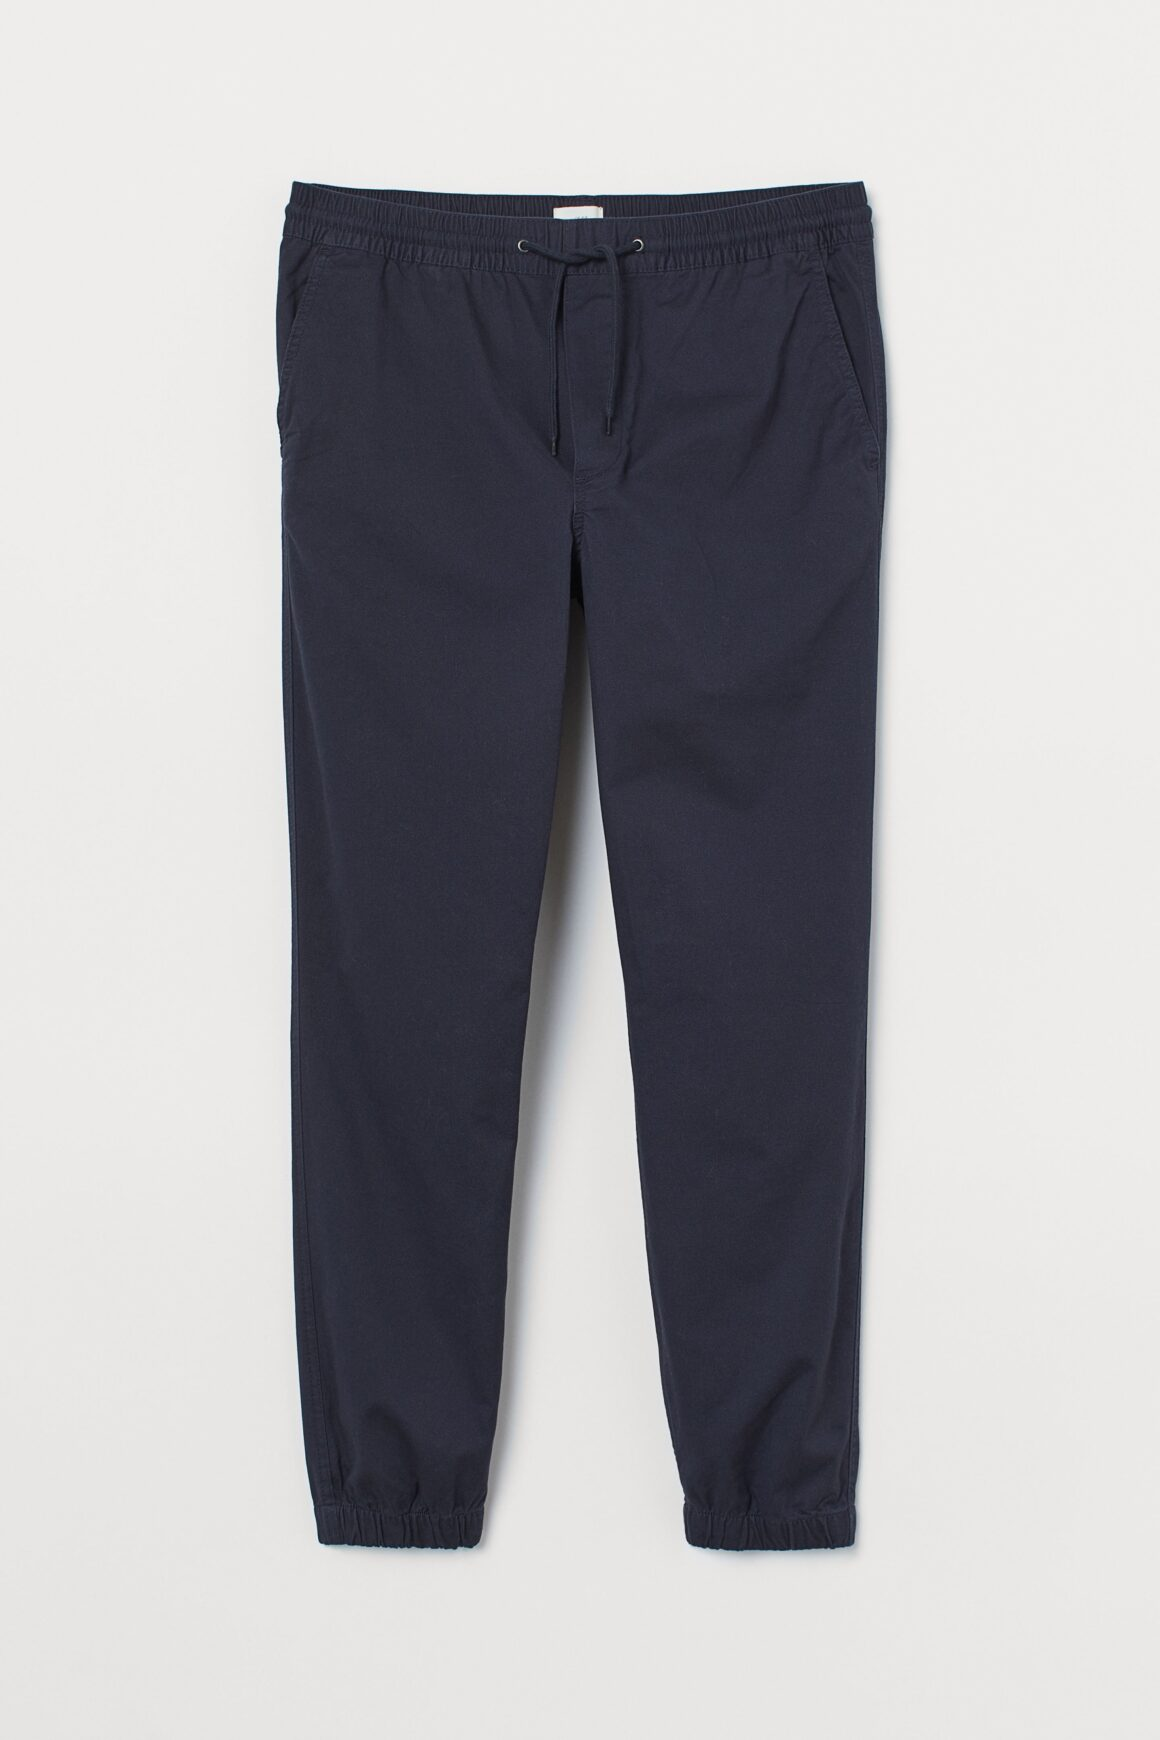 H&M Jogger Trousers Work from Home